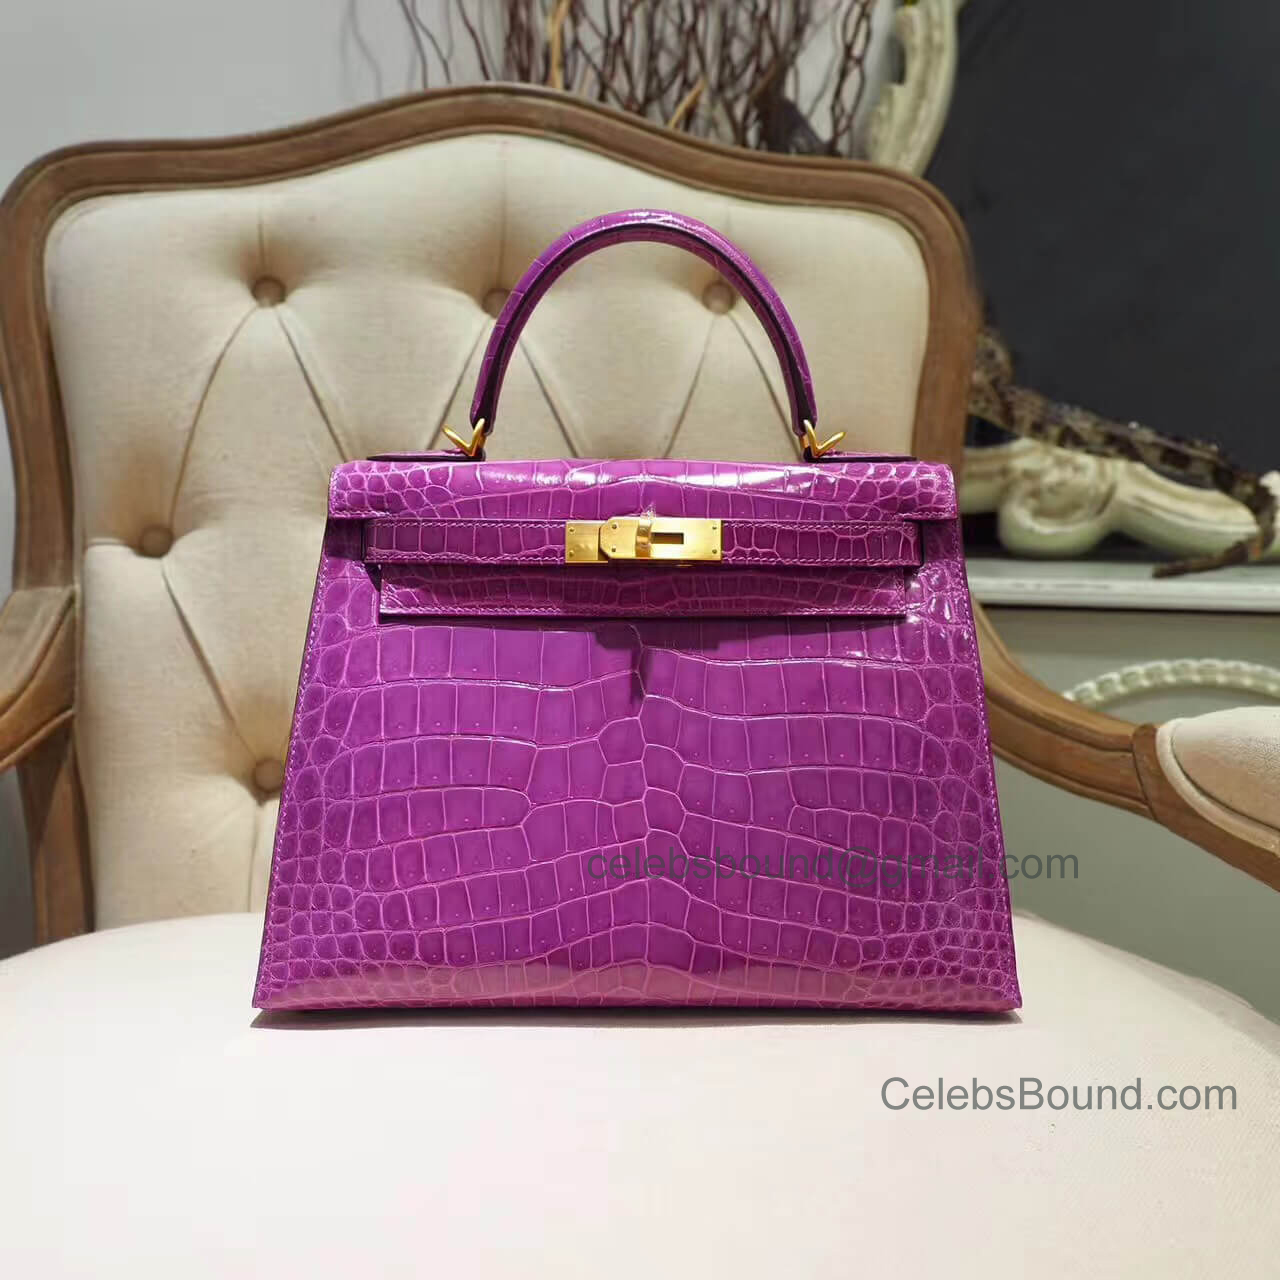 Replica Hermes Kelly 28 Bag in 5c Violet Shiny Porosus Croc GHW